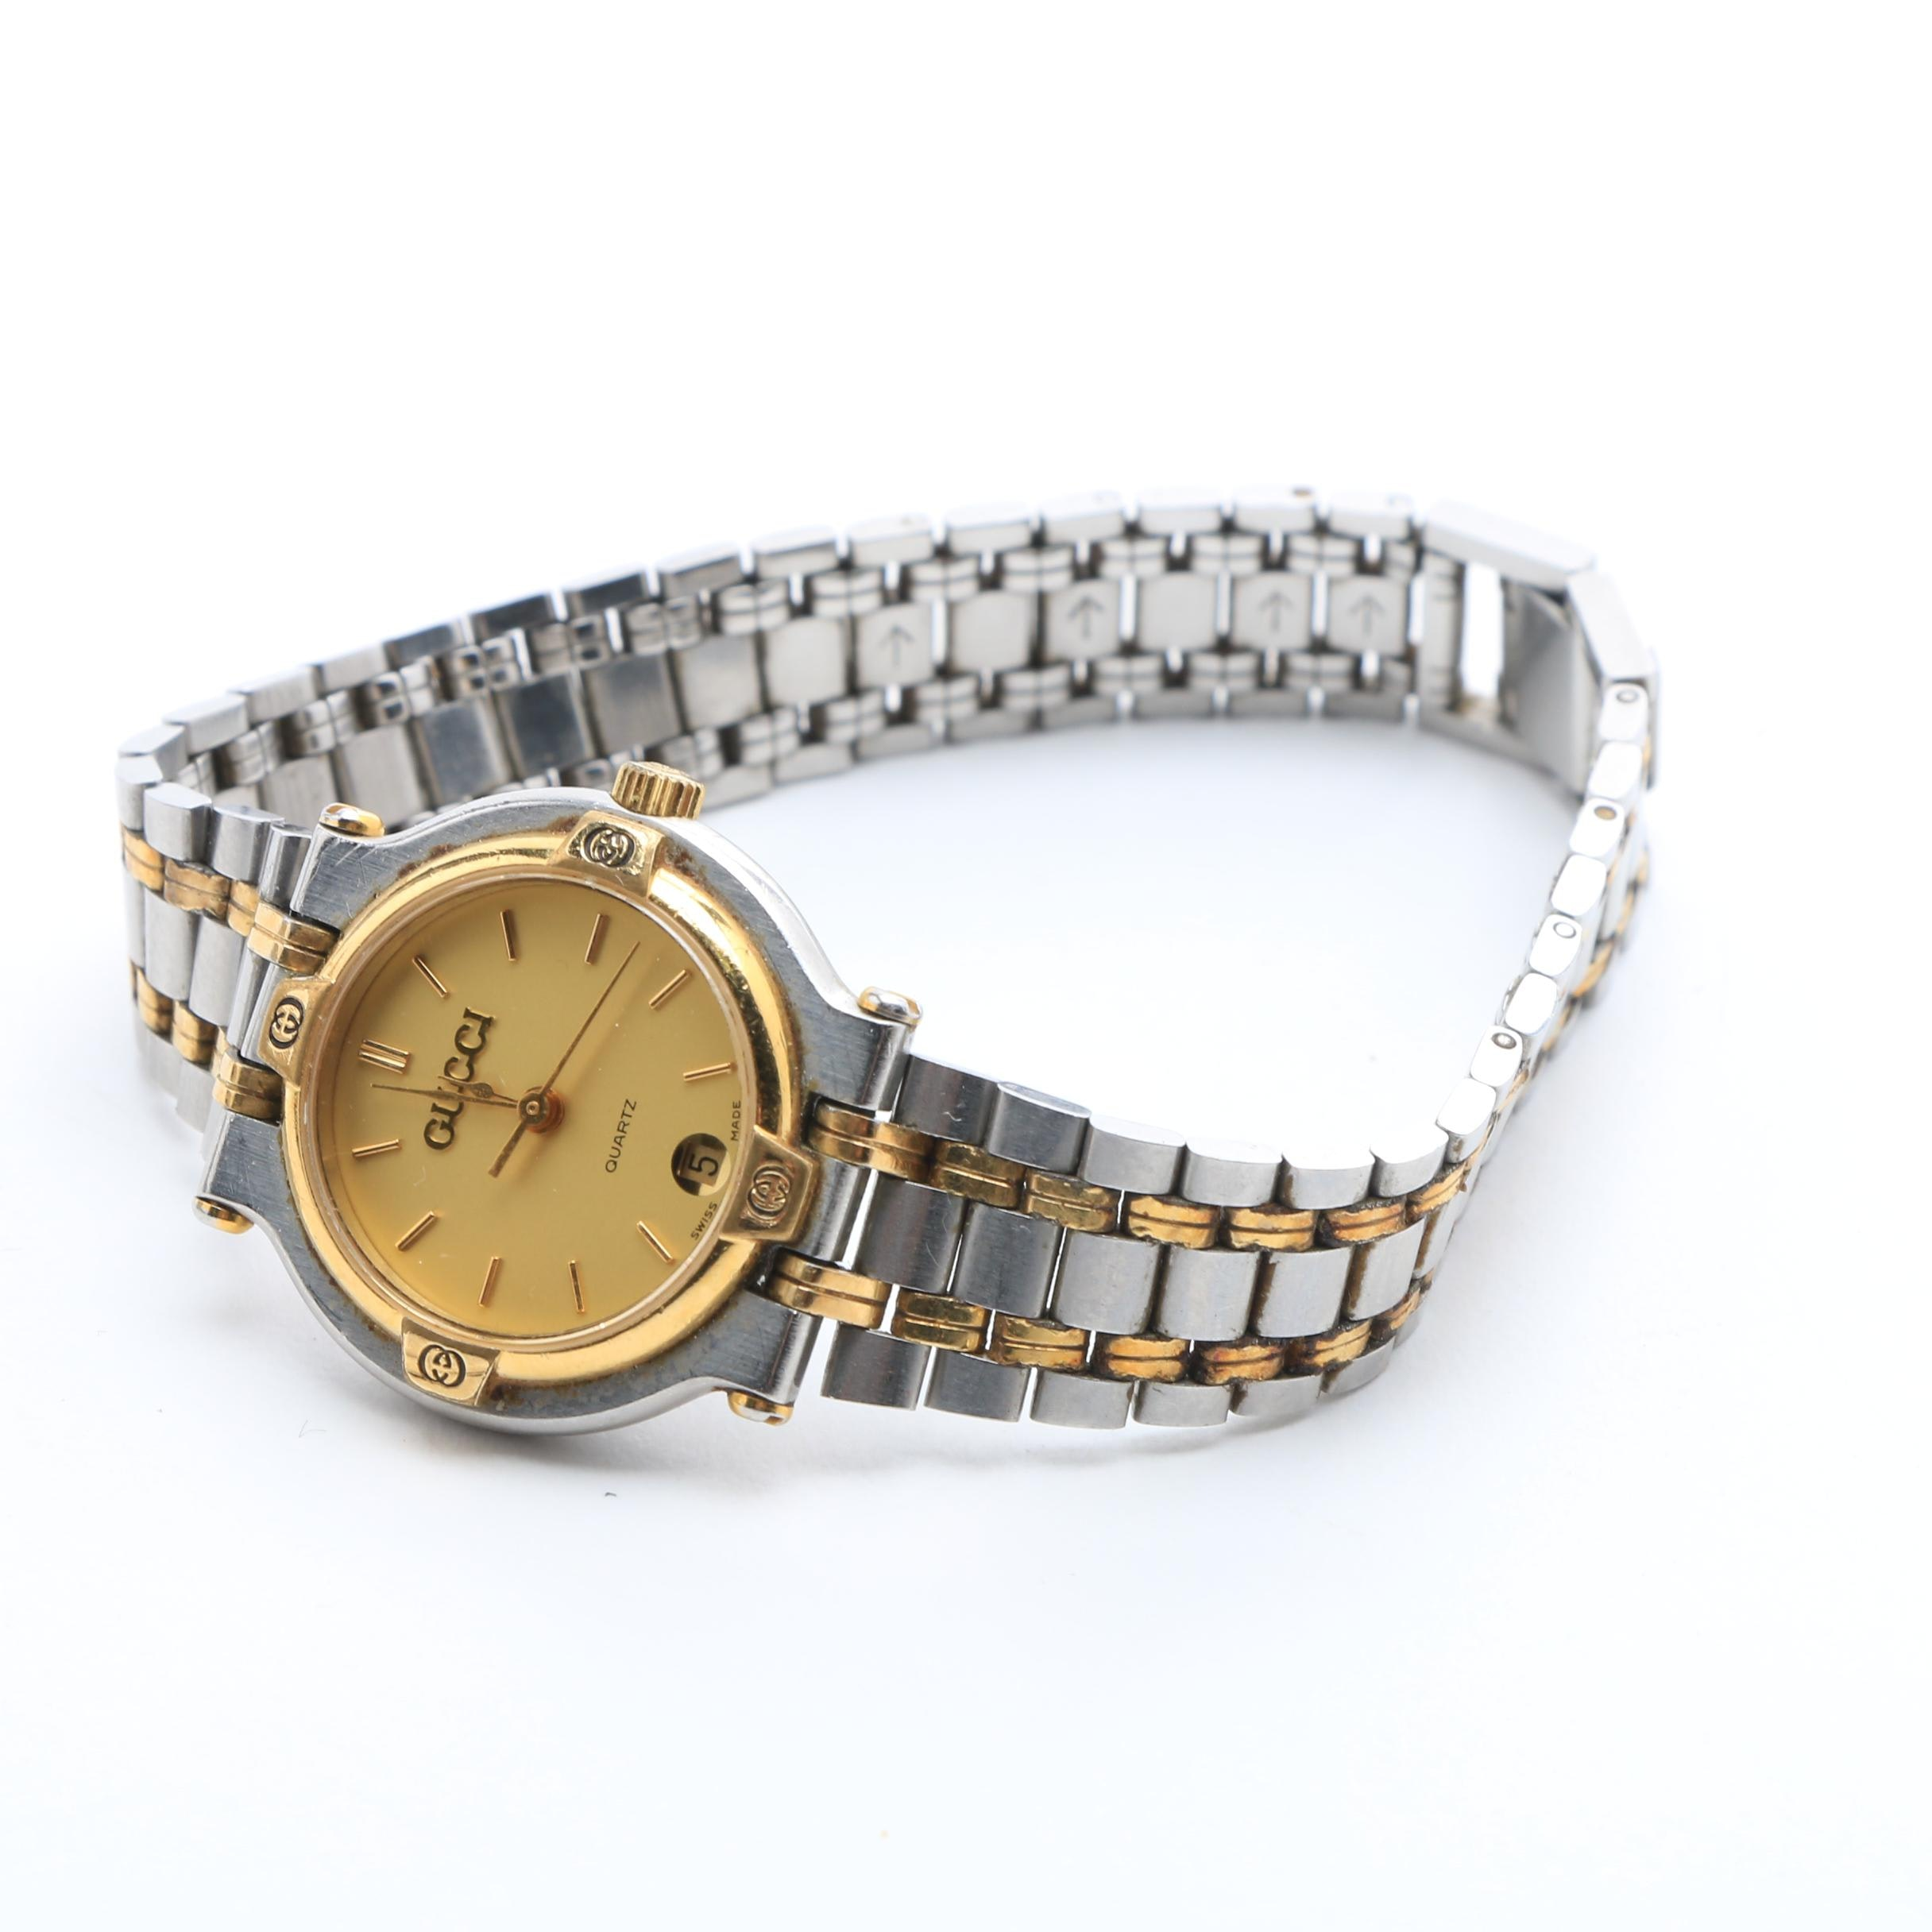 Vintage Gucci 9000L Wristwatch with Two Tone Gold and Stainless Steel Bracelet